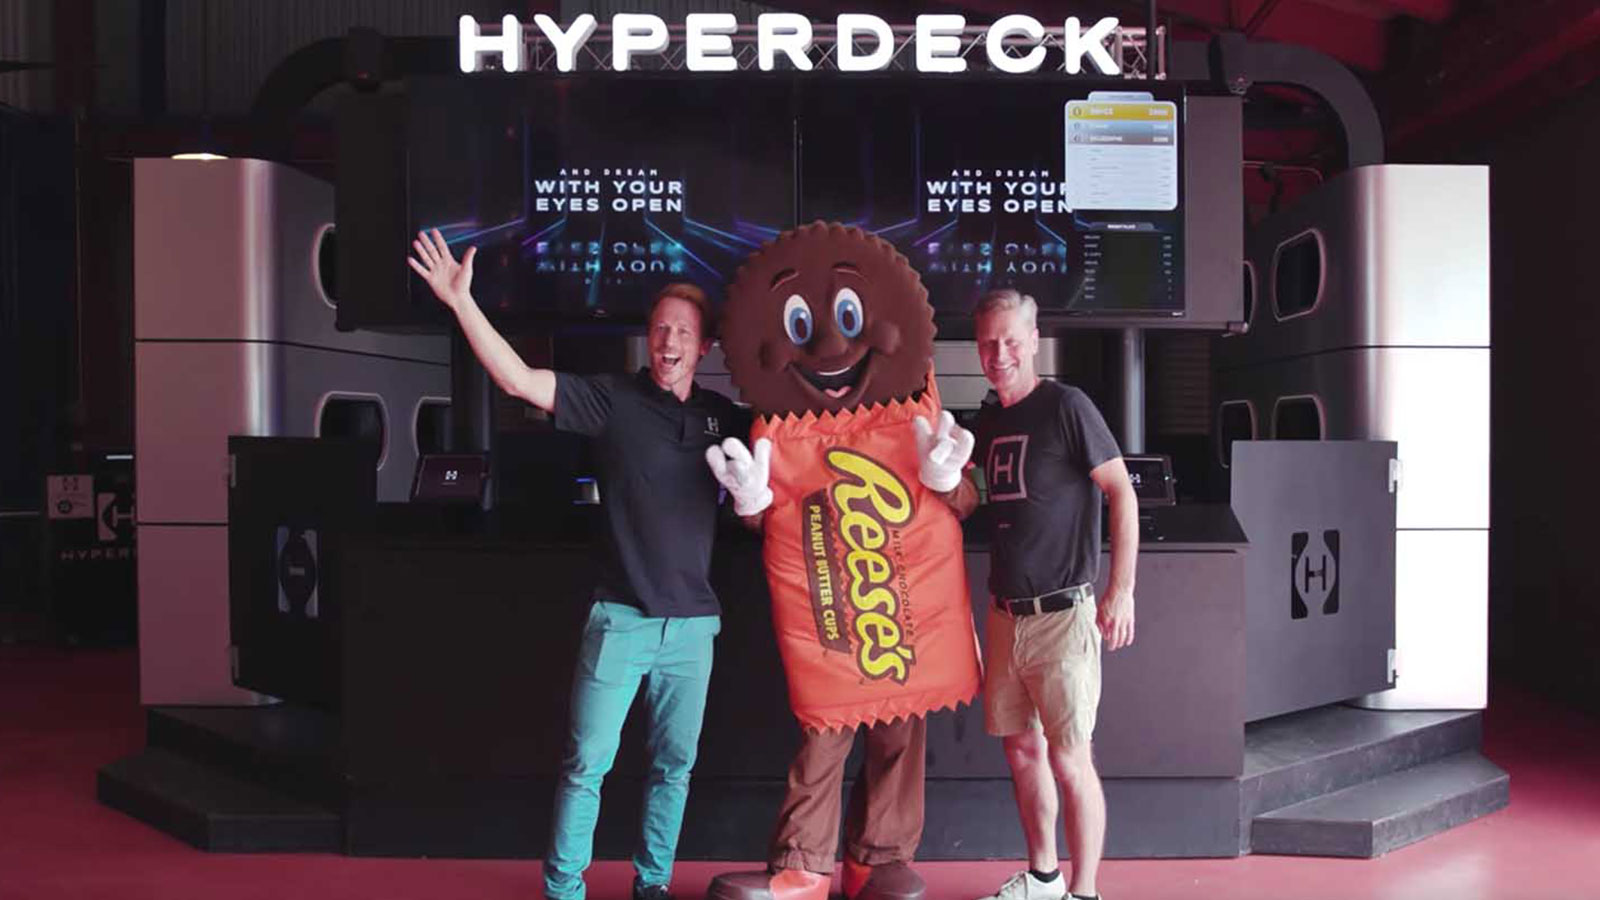 Image showing signage project solution for Hyperdeck event